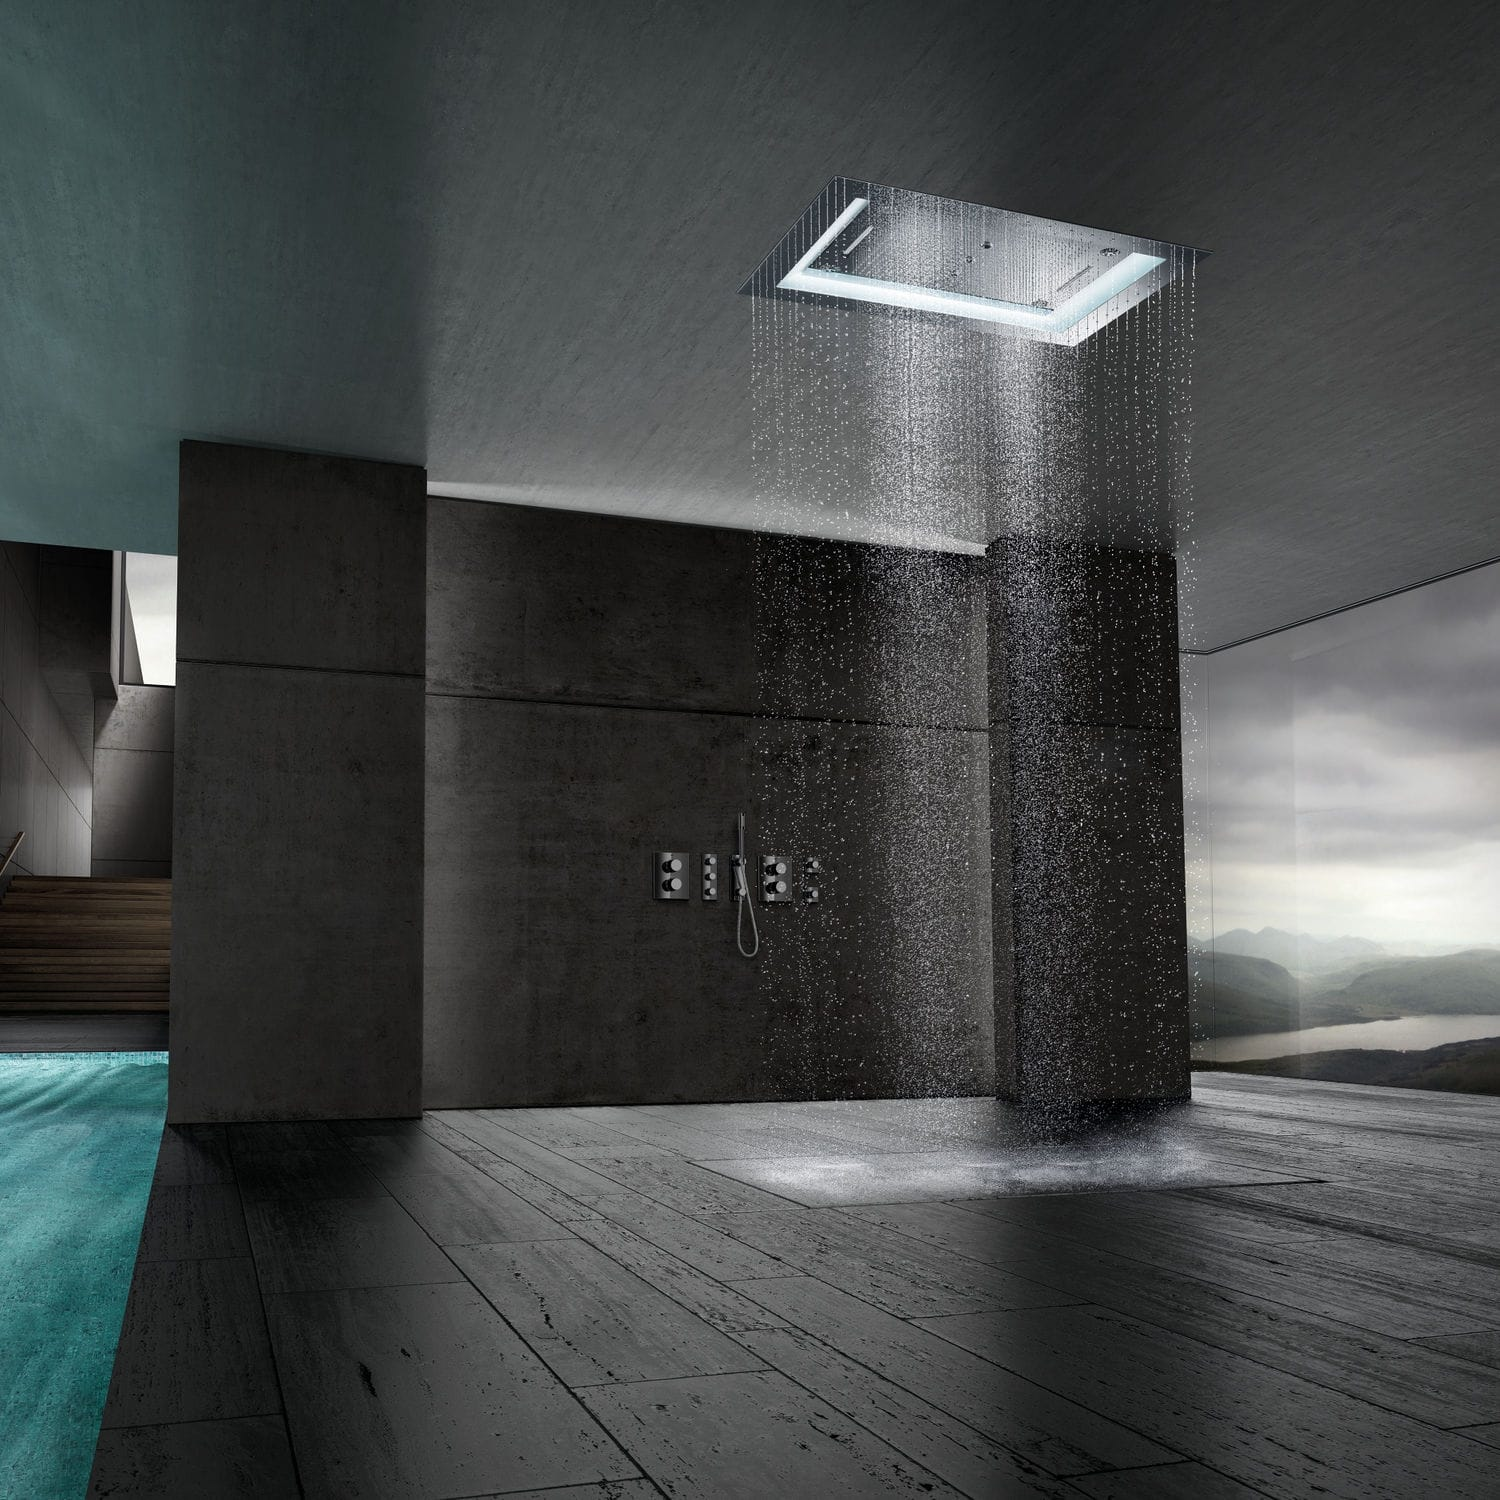 recessed rain shower head. Recessed ceiling shower head  rectangular rain with built in light AQUASYMPHONY RAINSHOWER